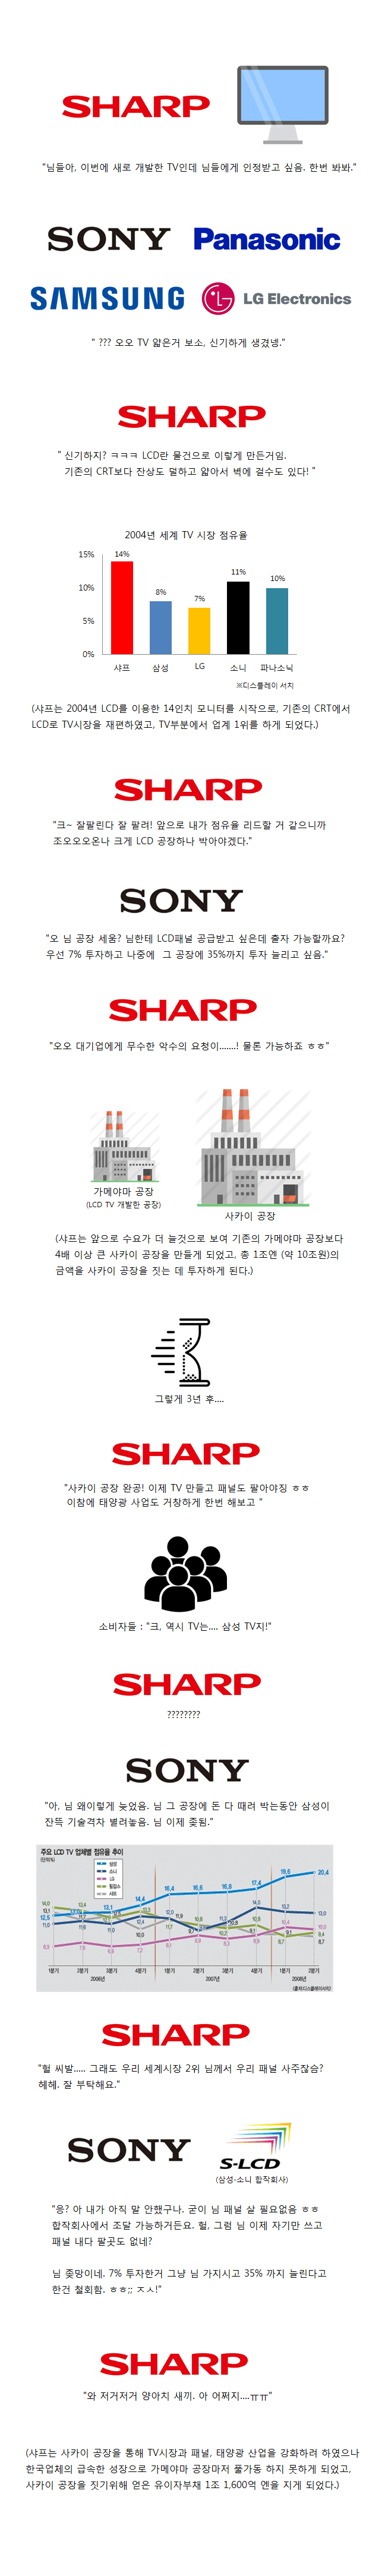 sharp01.png